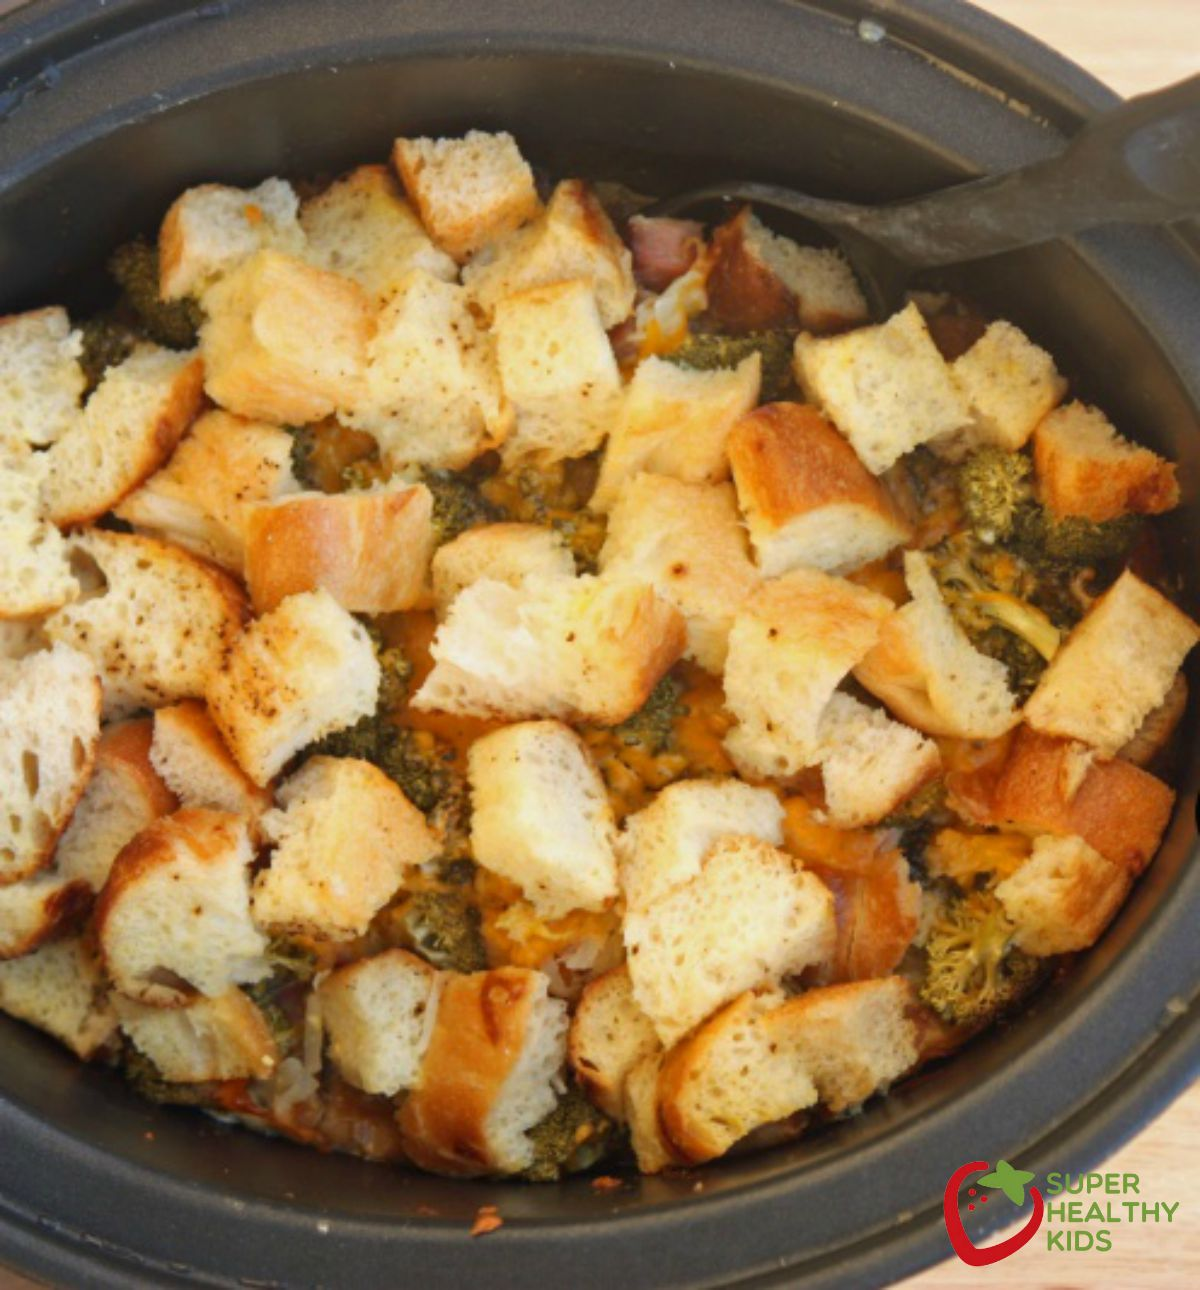 Crockpot Breakfast Bake Recipe